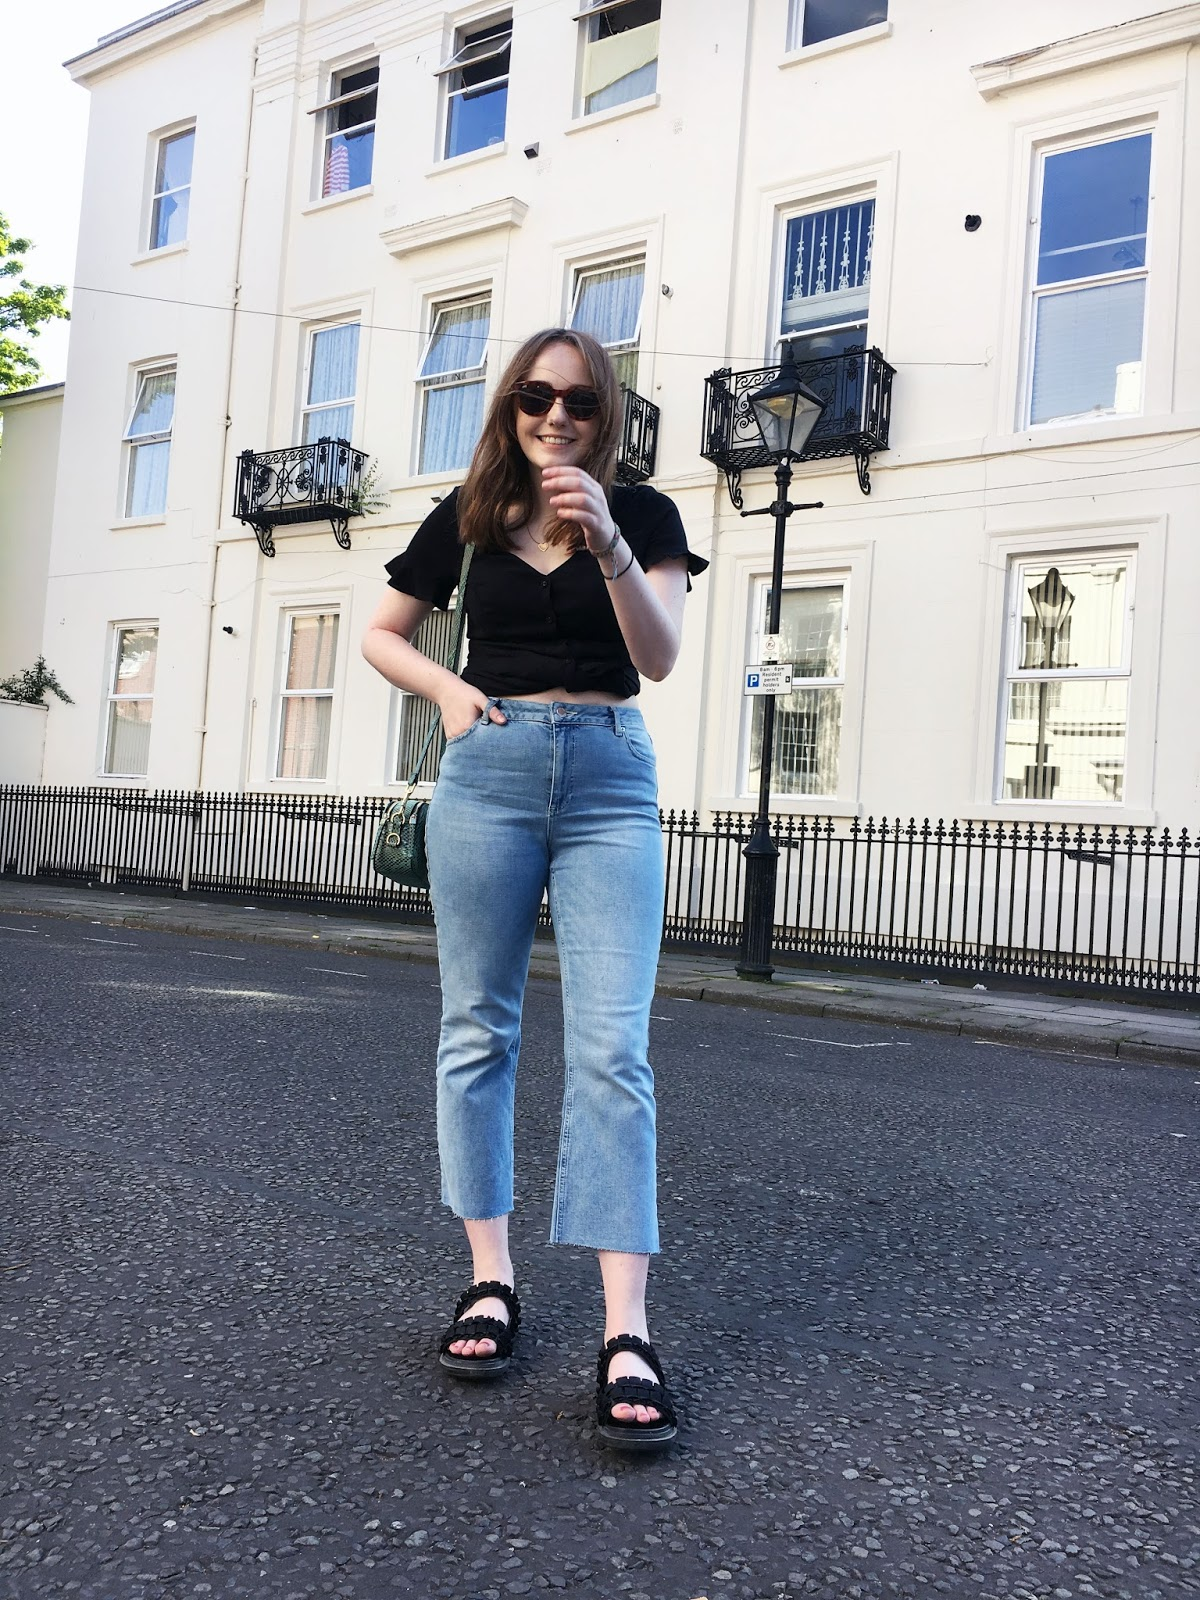 Liverpool based fashion blogger wearing summer outfit of black dress tied into a button up top, light blue kick flare jeans, black chunky sandals and green snake print cross body bag with tortoiseshell sunglasses